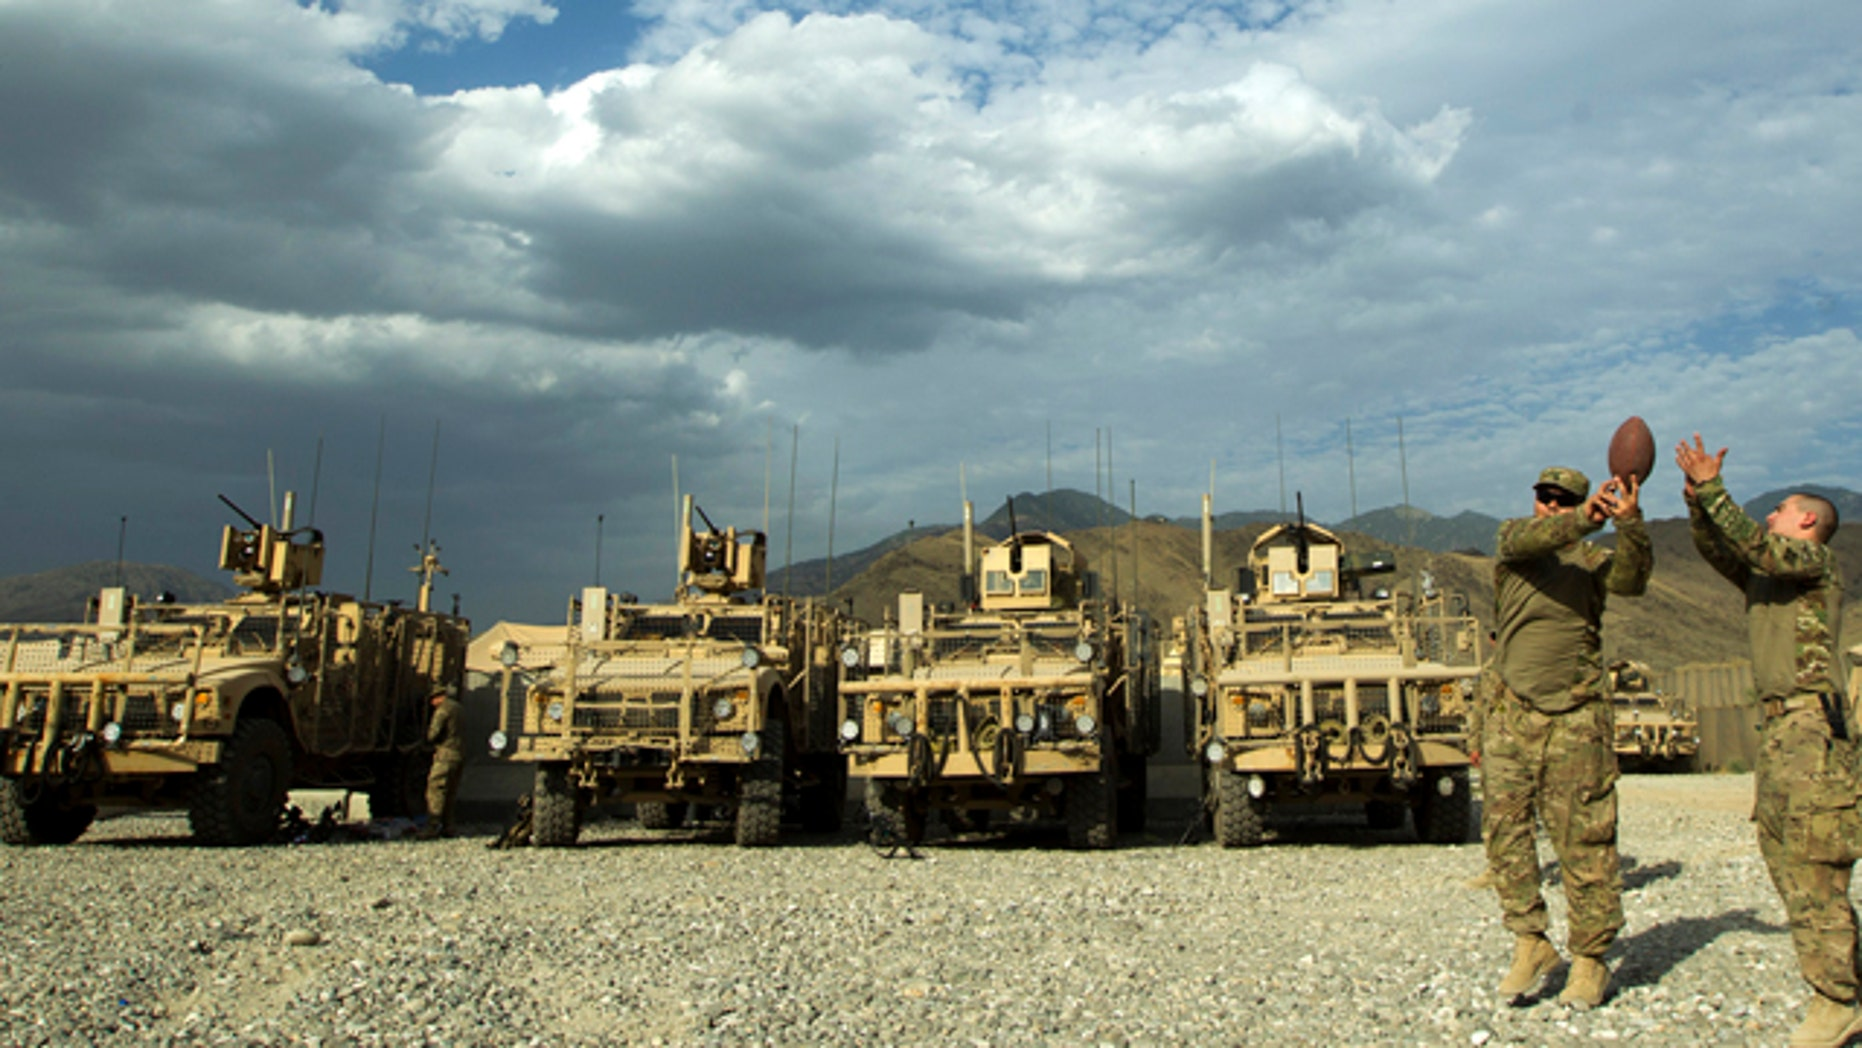 FILE: Soldiers of the 4th Brigade Combat Team, 4th Infantry Division play football in front of parked MRAP vehicles as they prepare to leave in a convoy inside FOB Joyce in Afghanistan's Kunar Province.